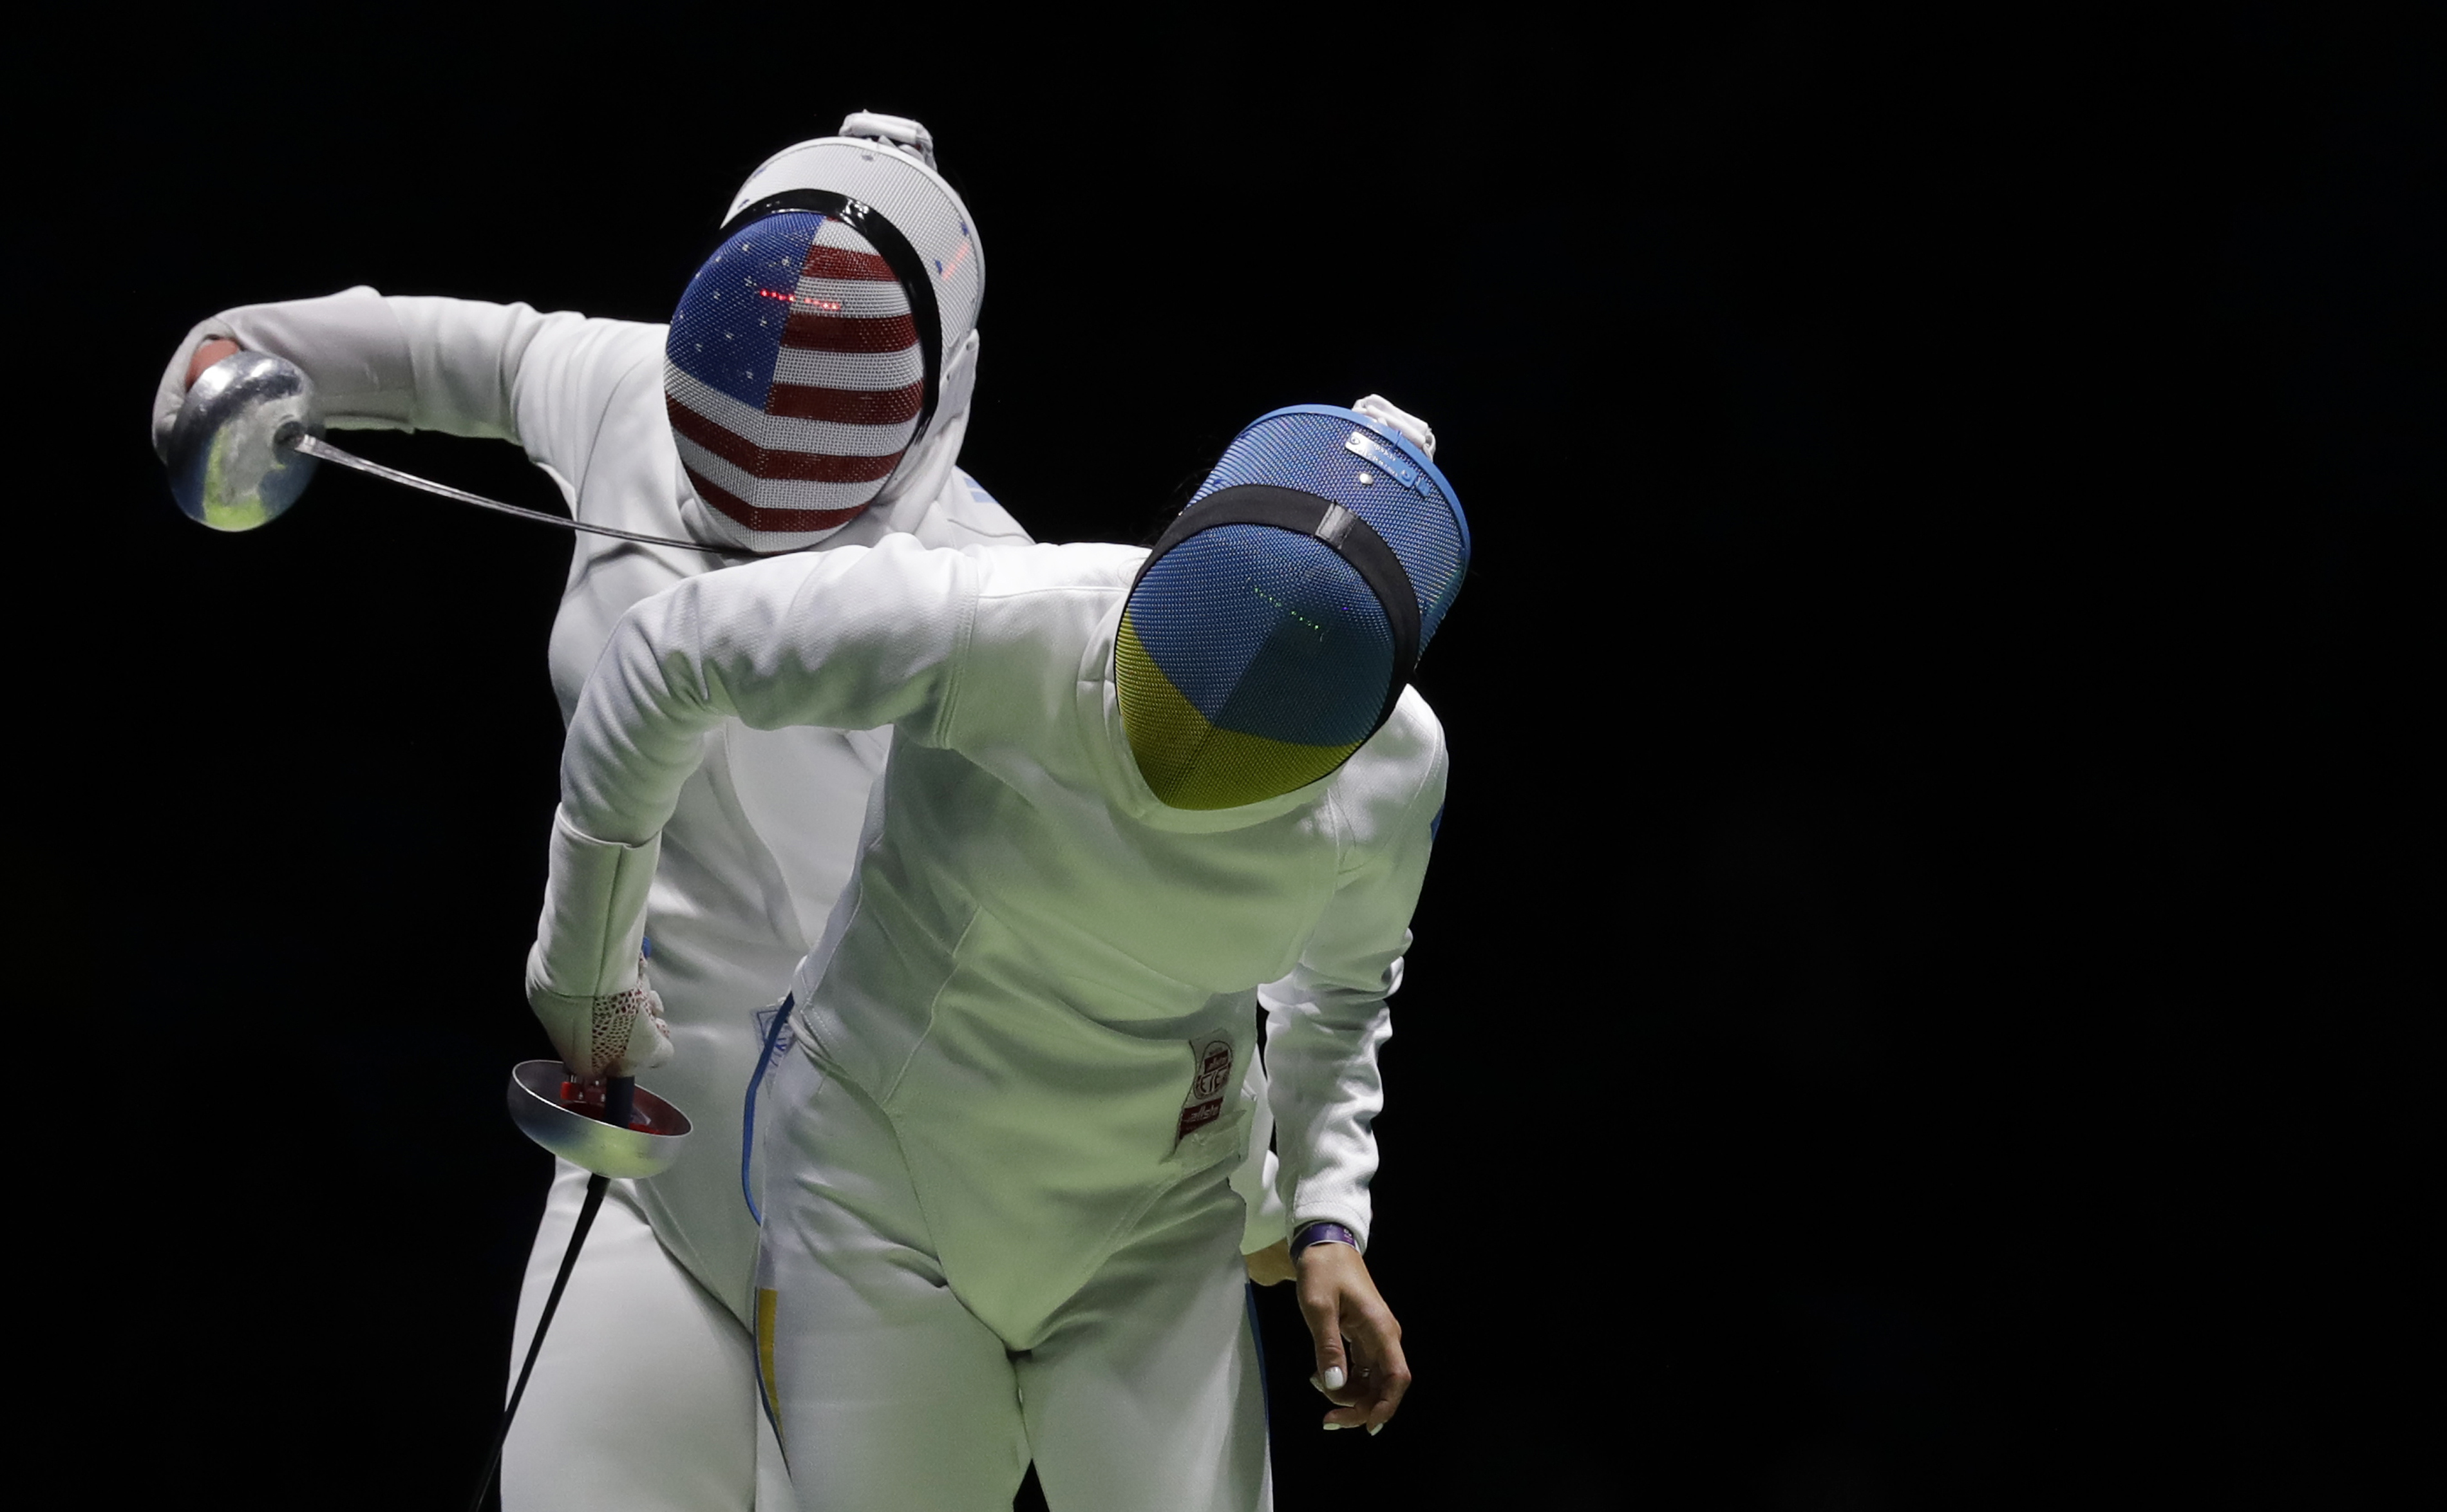 Courtney Hurley of the United States, left, and Yana Shemyakina of Ukraine compete in the women's individual epee event at the 2016 Summer Olympics in Rio de Janeiro, Brazil, Saturday, Aug. 6, 2016. (AP Photo/Andrew Medichini)